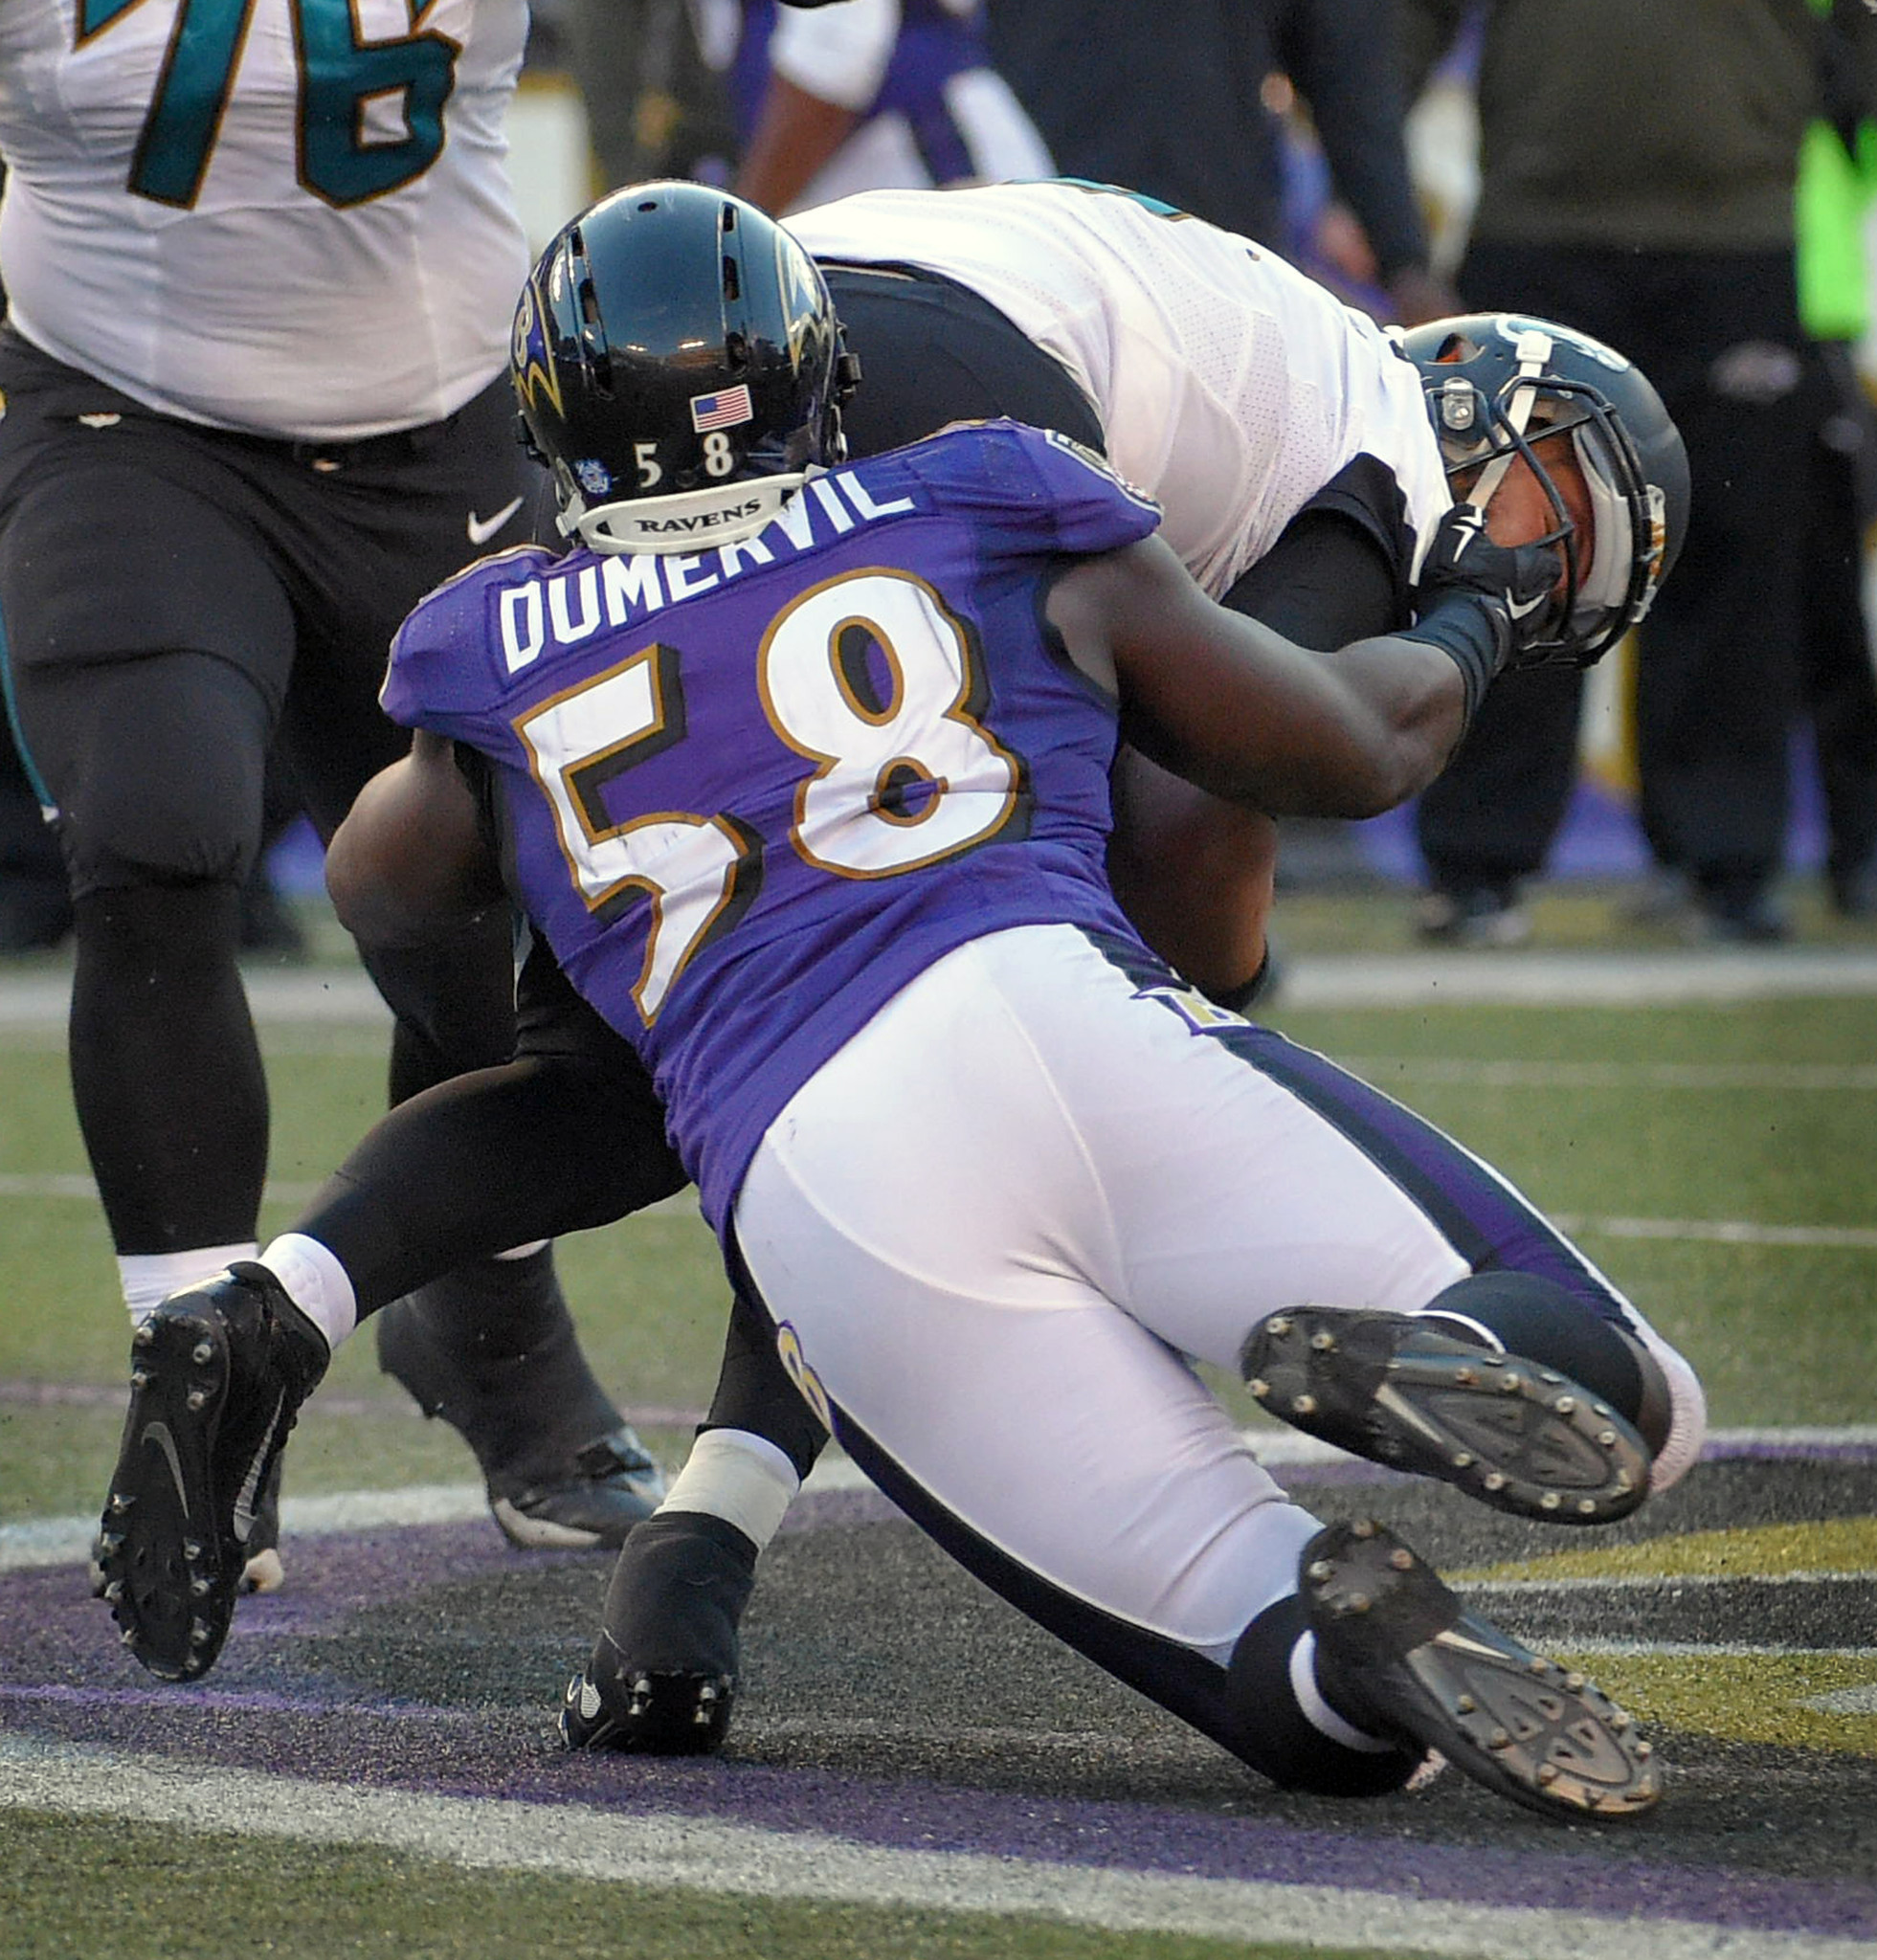 Baltimore Wallpaper: Dumervil Likely To Play, But Ravens Can Take Their Time